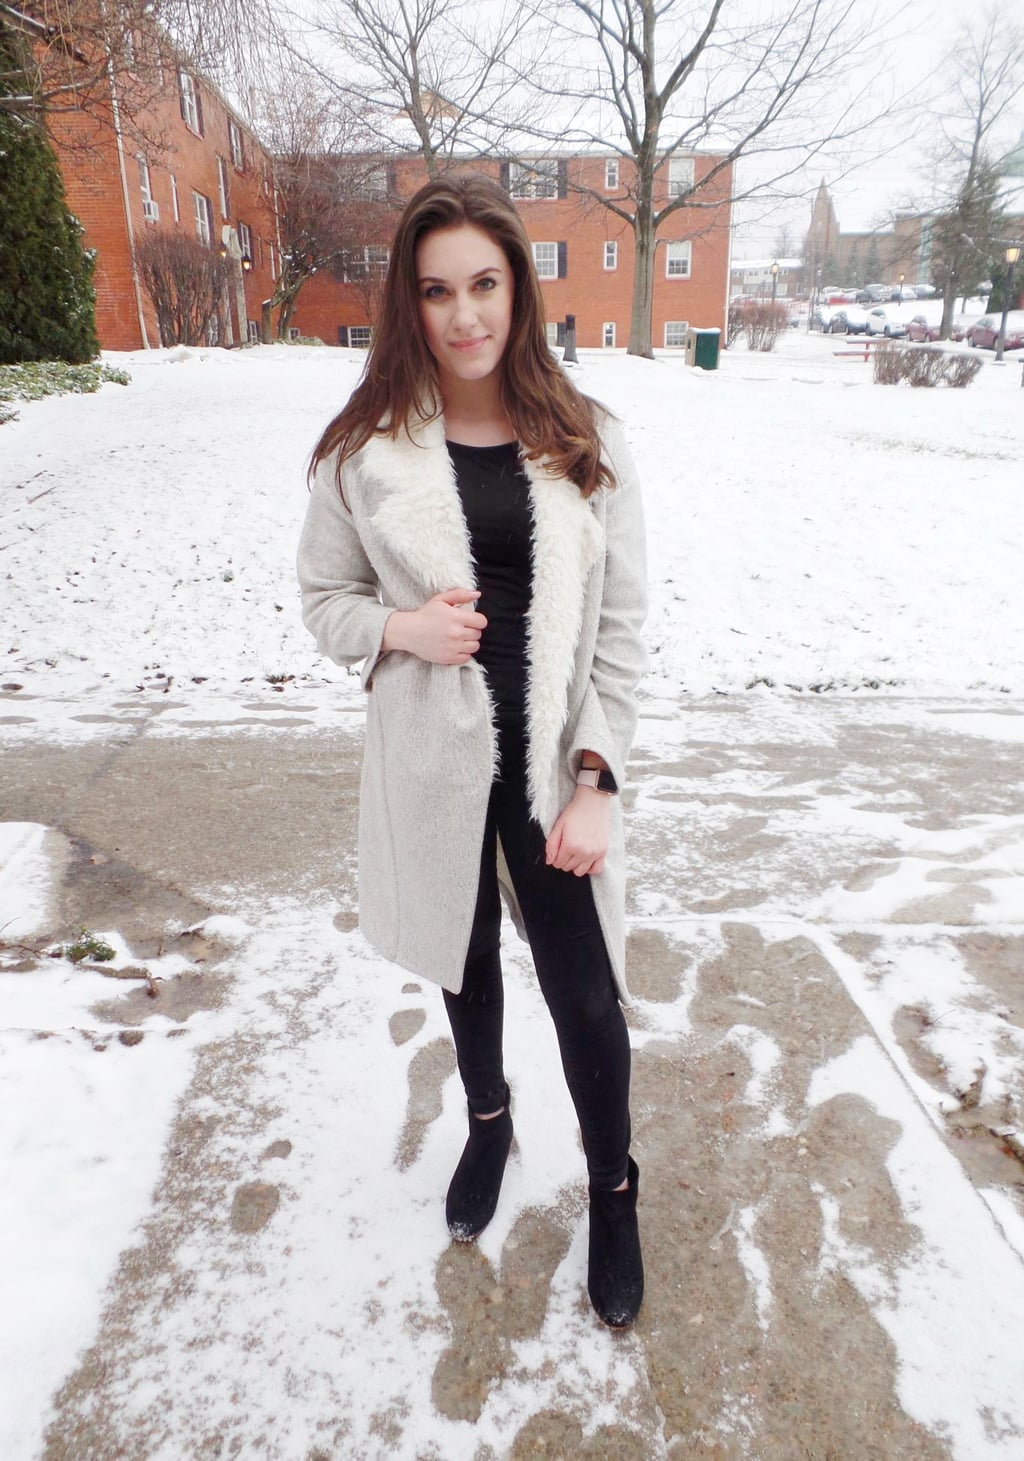 A Mercyhurst University student wears an all black monochromatic outfit made up of a tee, jeans, and booties, with a long grey coat with white fur lapels.